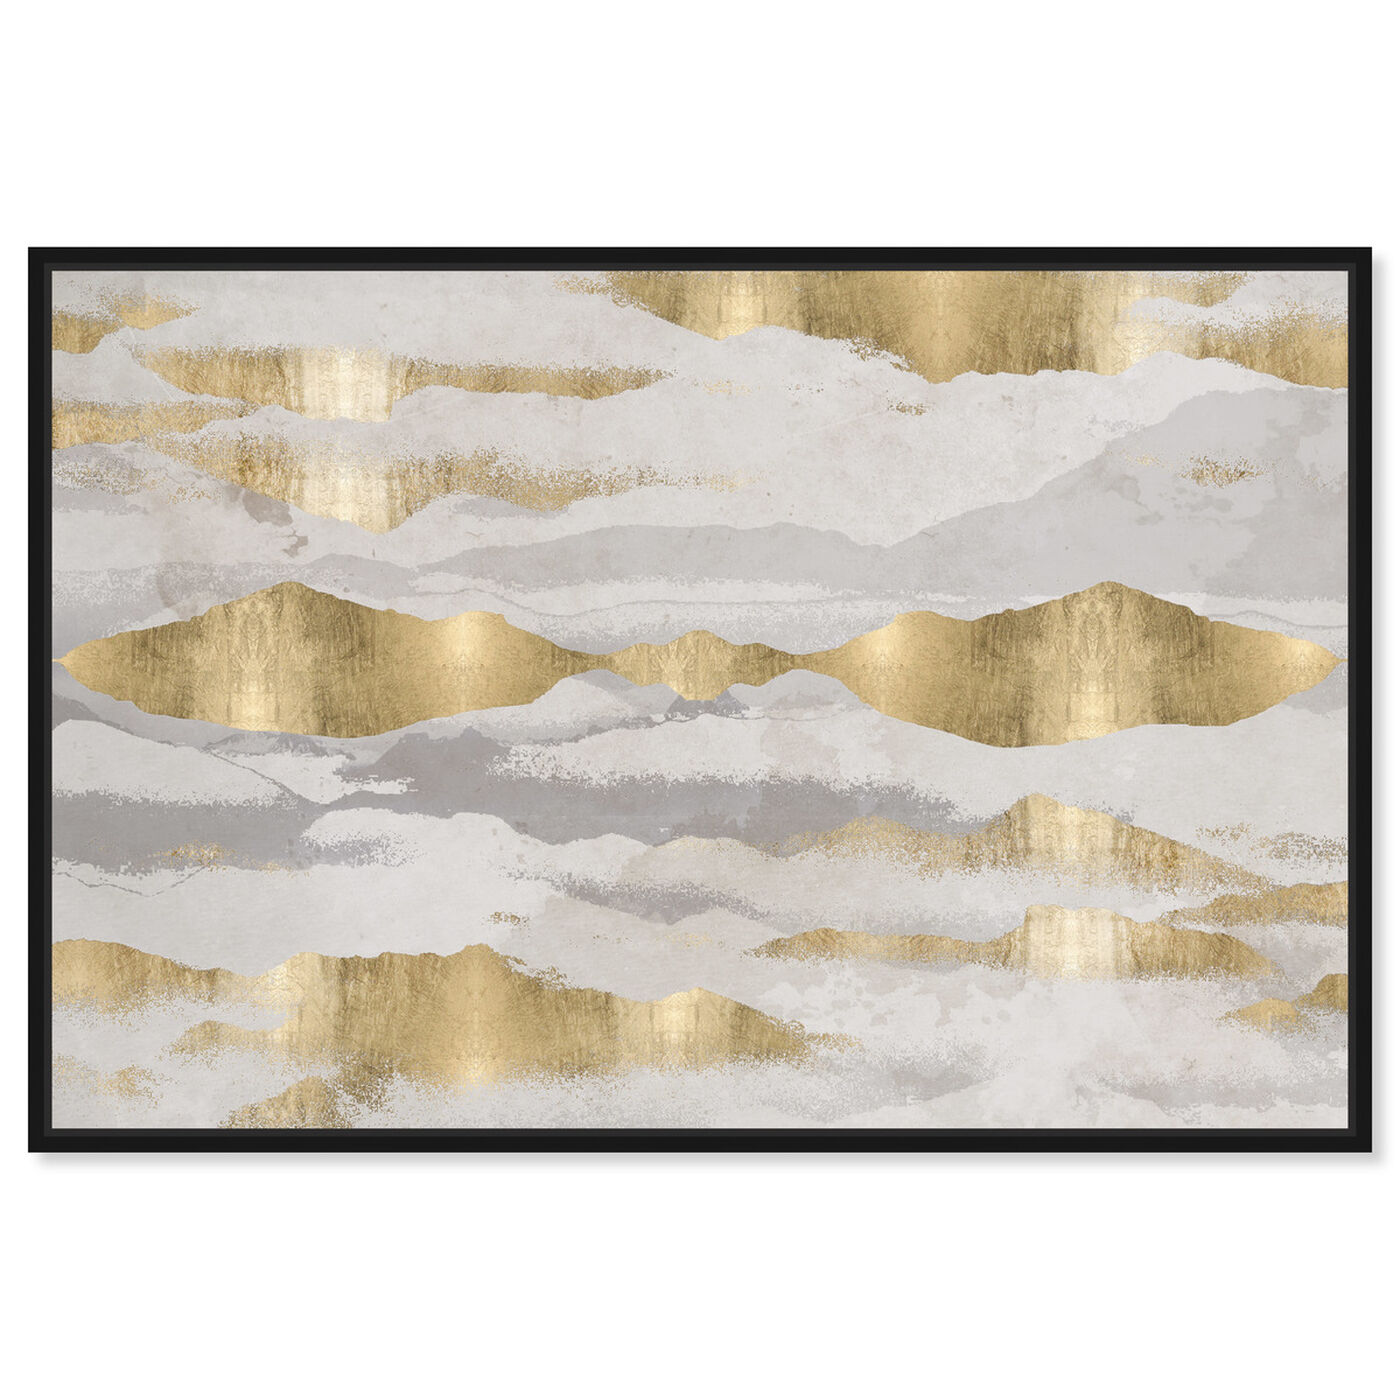 Front view of Mountains Of Life featuring abstract and textures art.